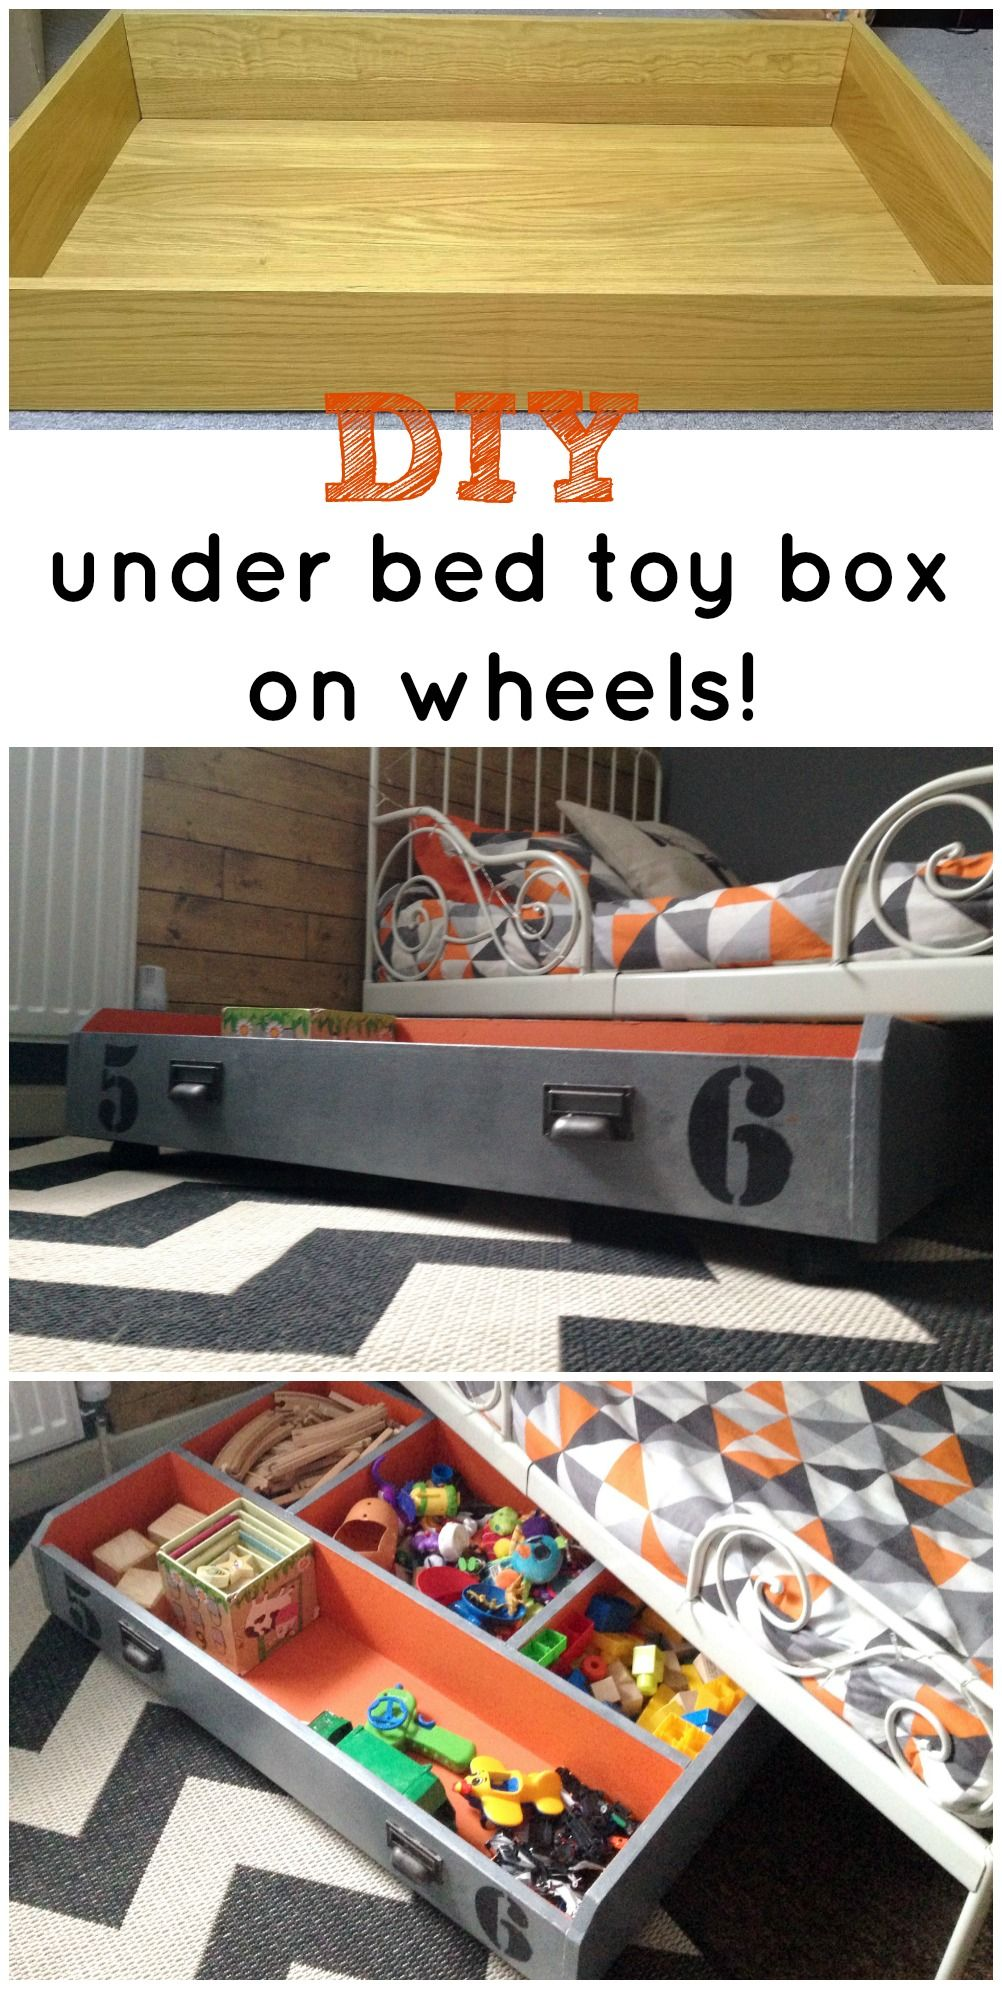 Ikea Pax Drawer To Under Bed Toy Storage On Wheels Ikea Pax Kids Storage Under Bed Storage